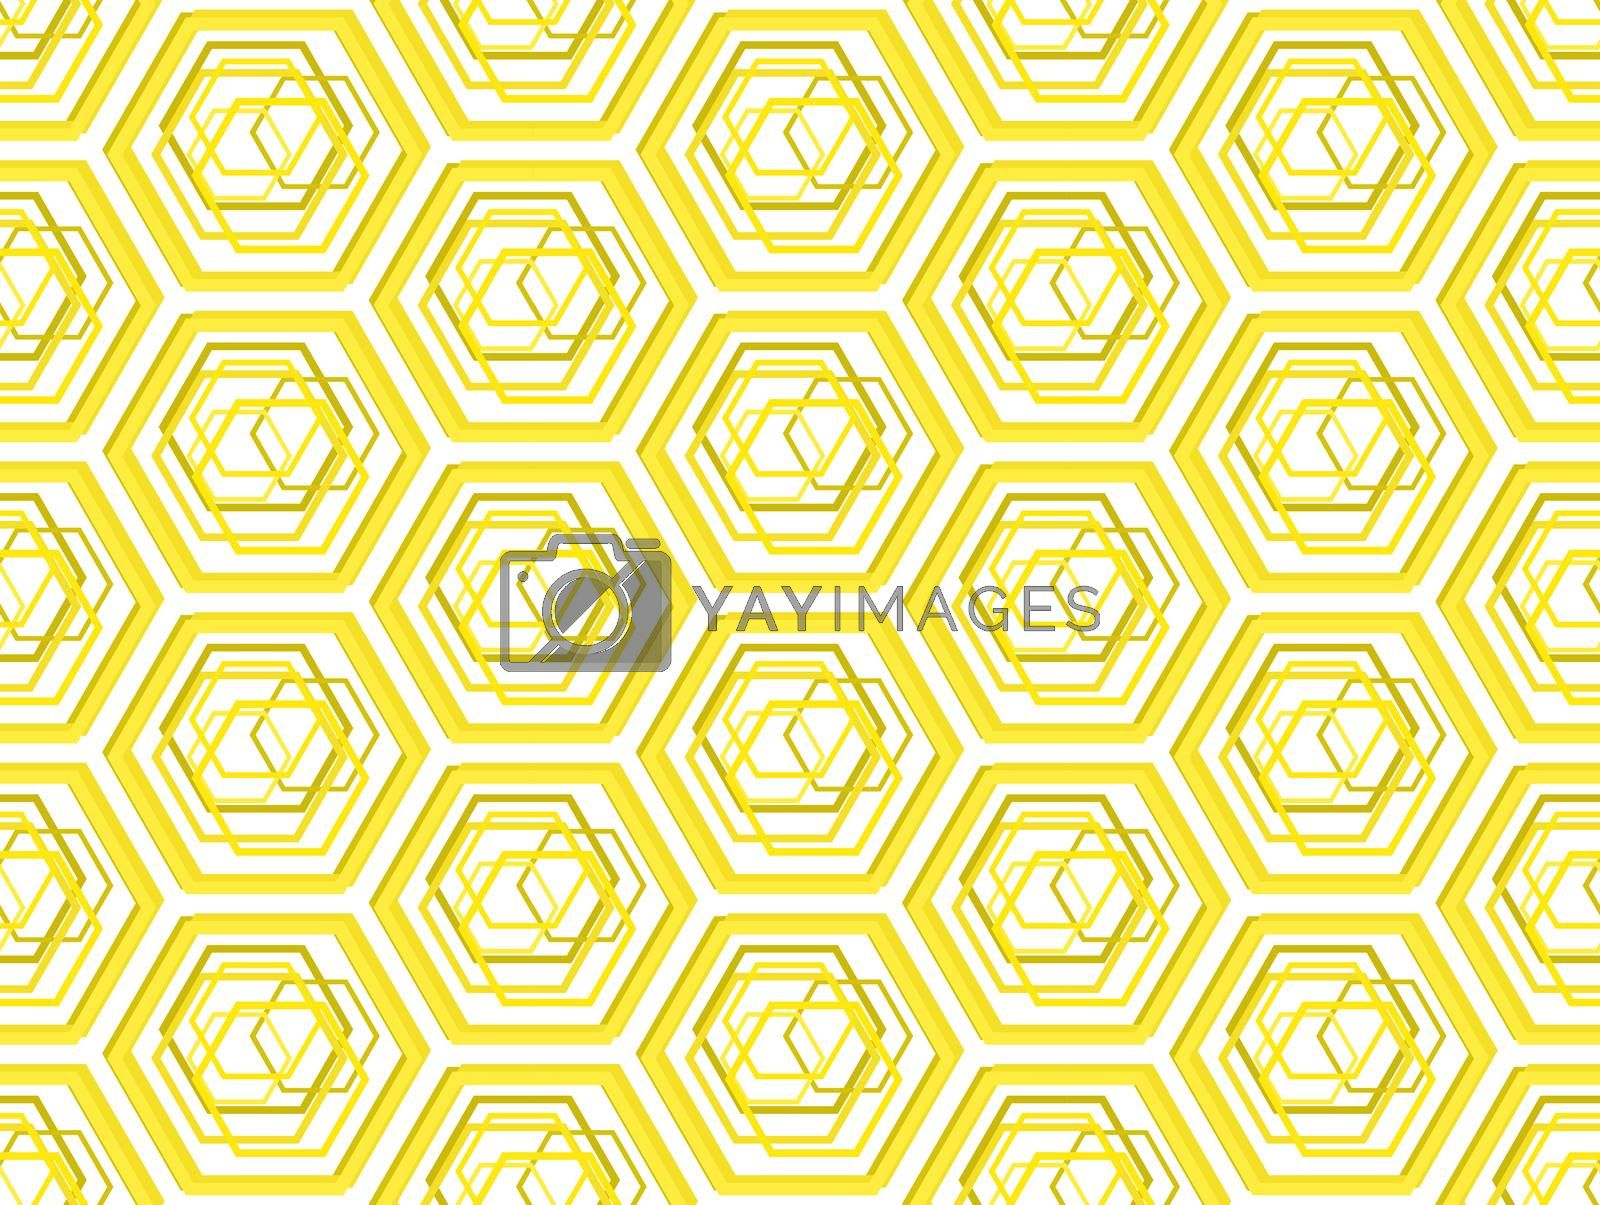 Be honeycombs stylized geometric seamless pattern background